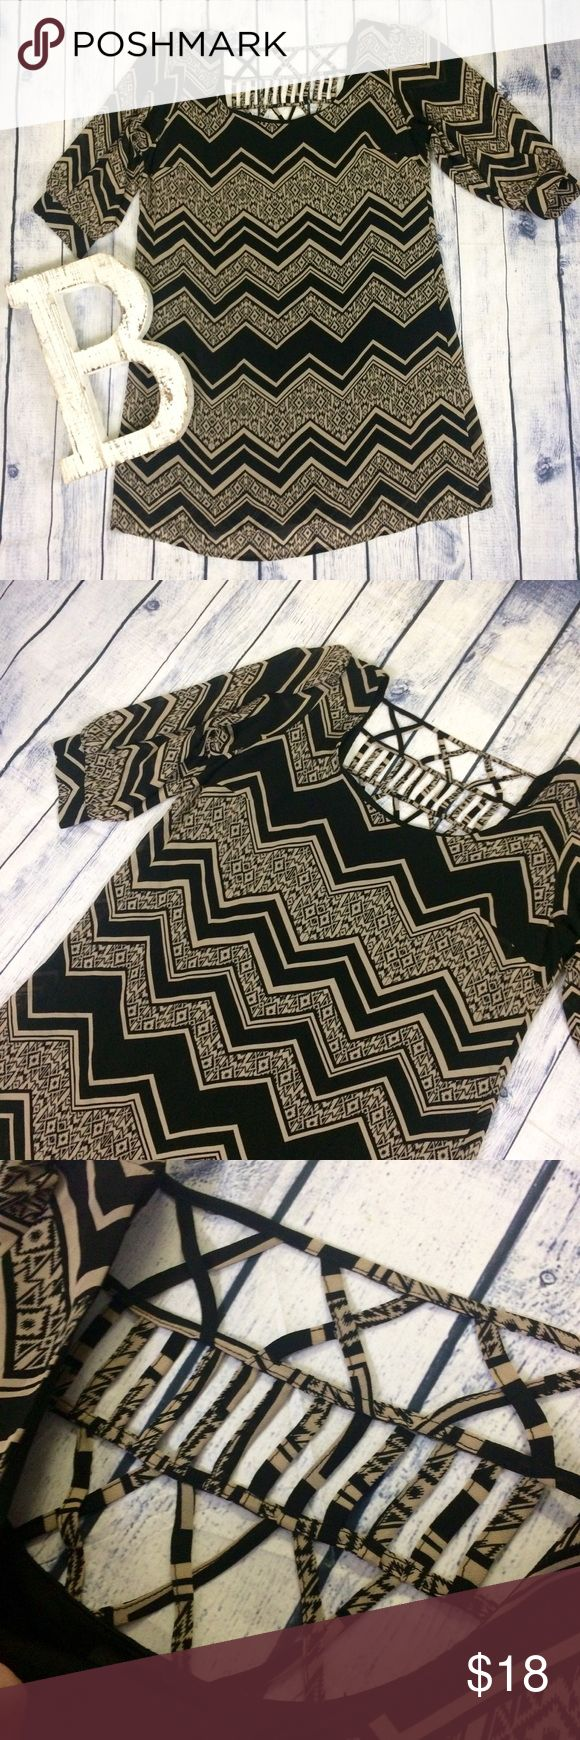 Plus size chevron caged back Black and Tan dress Plus size 1x dress. Sheer fabric fully lined. Chevron with Aztec print inside some of the lines. Black and Tan colors. Like new condition! 3/4 sleeves. Gorgeous caged style back. Make me an offer! 20% off all bundles! boutique Dresses